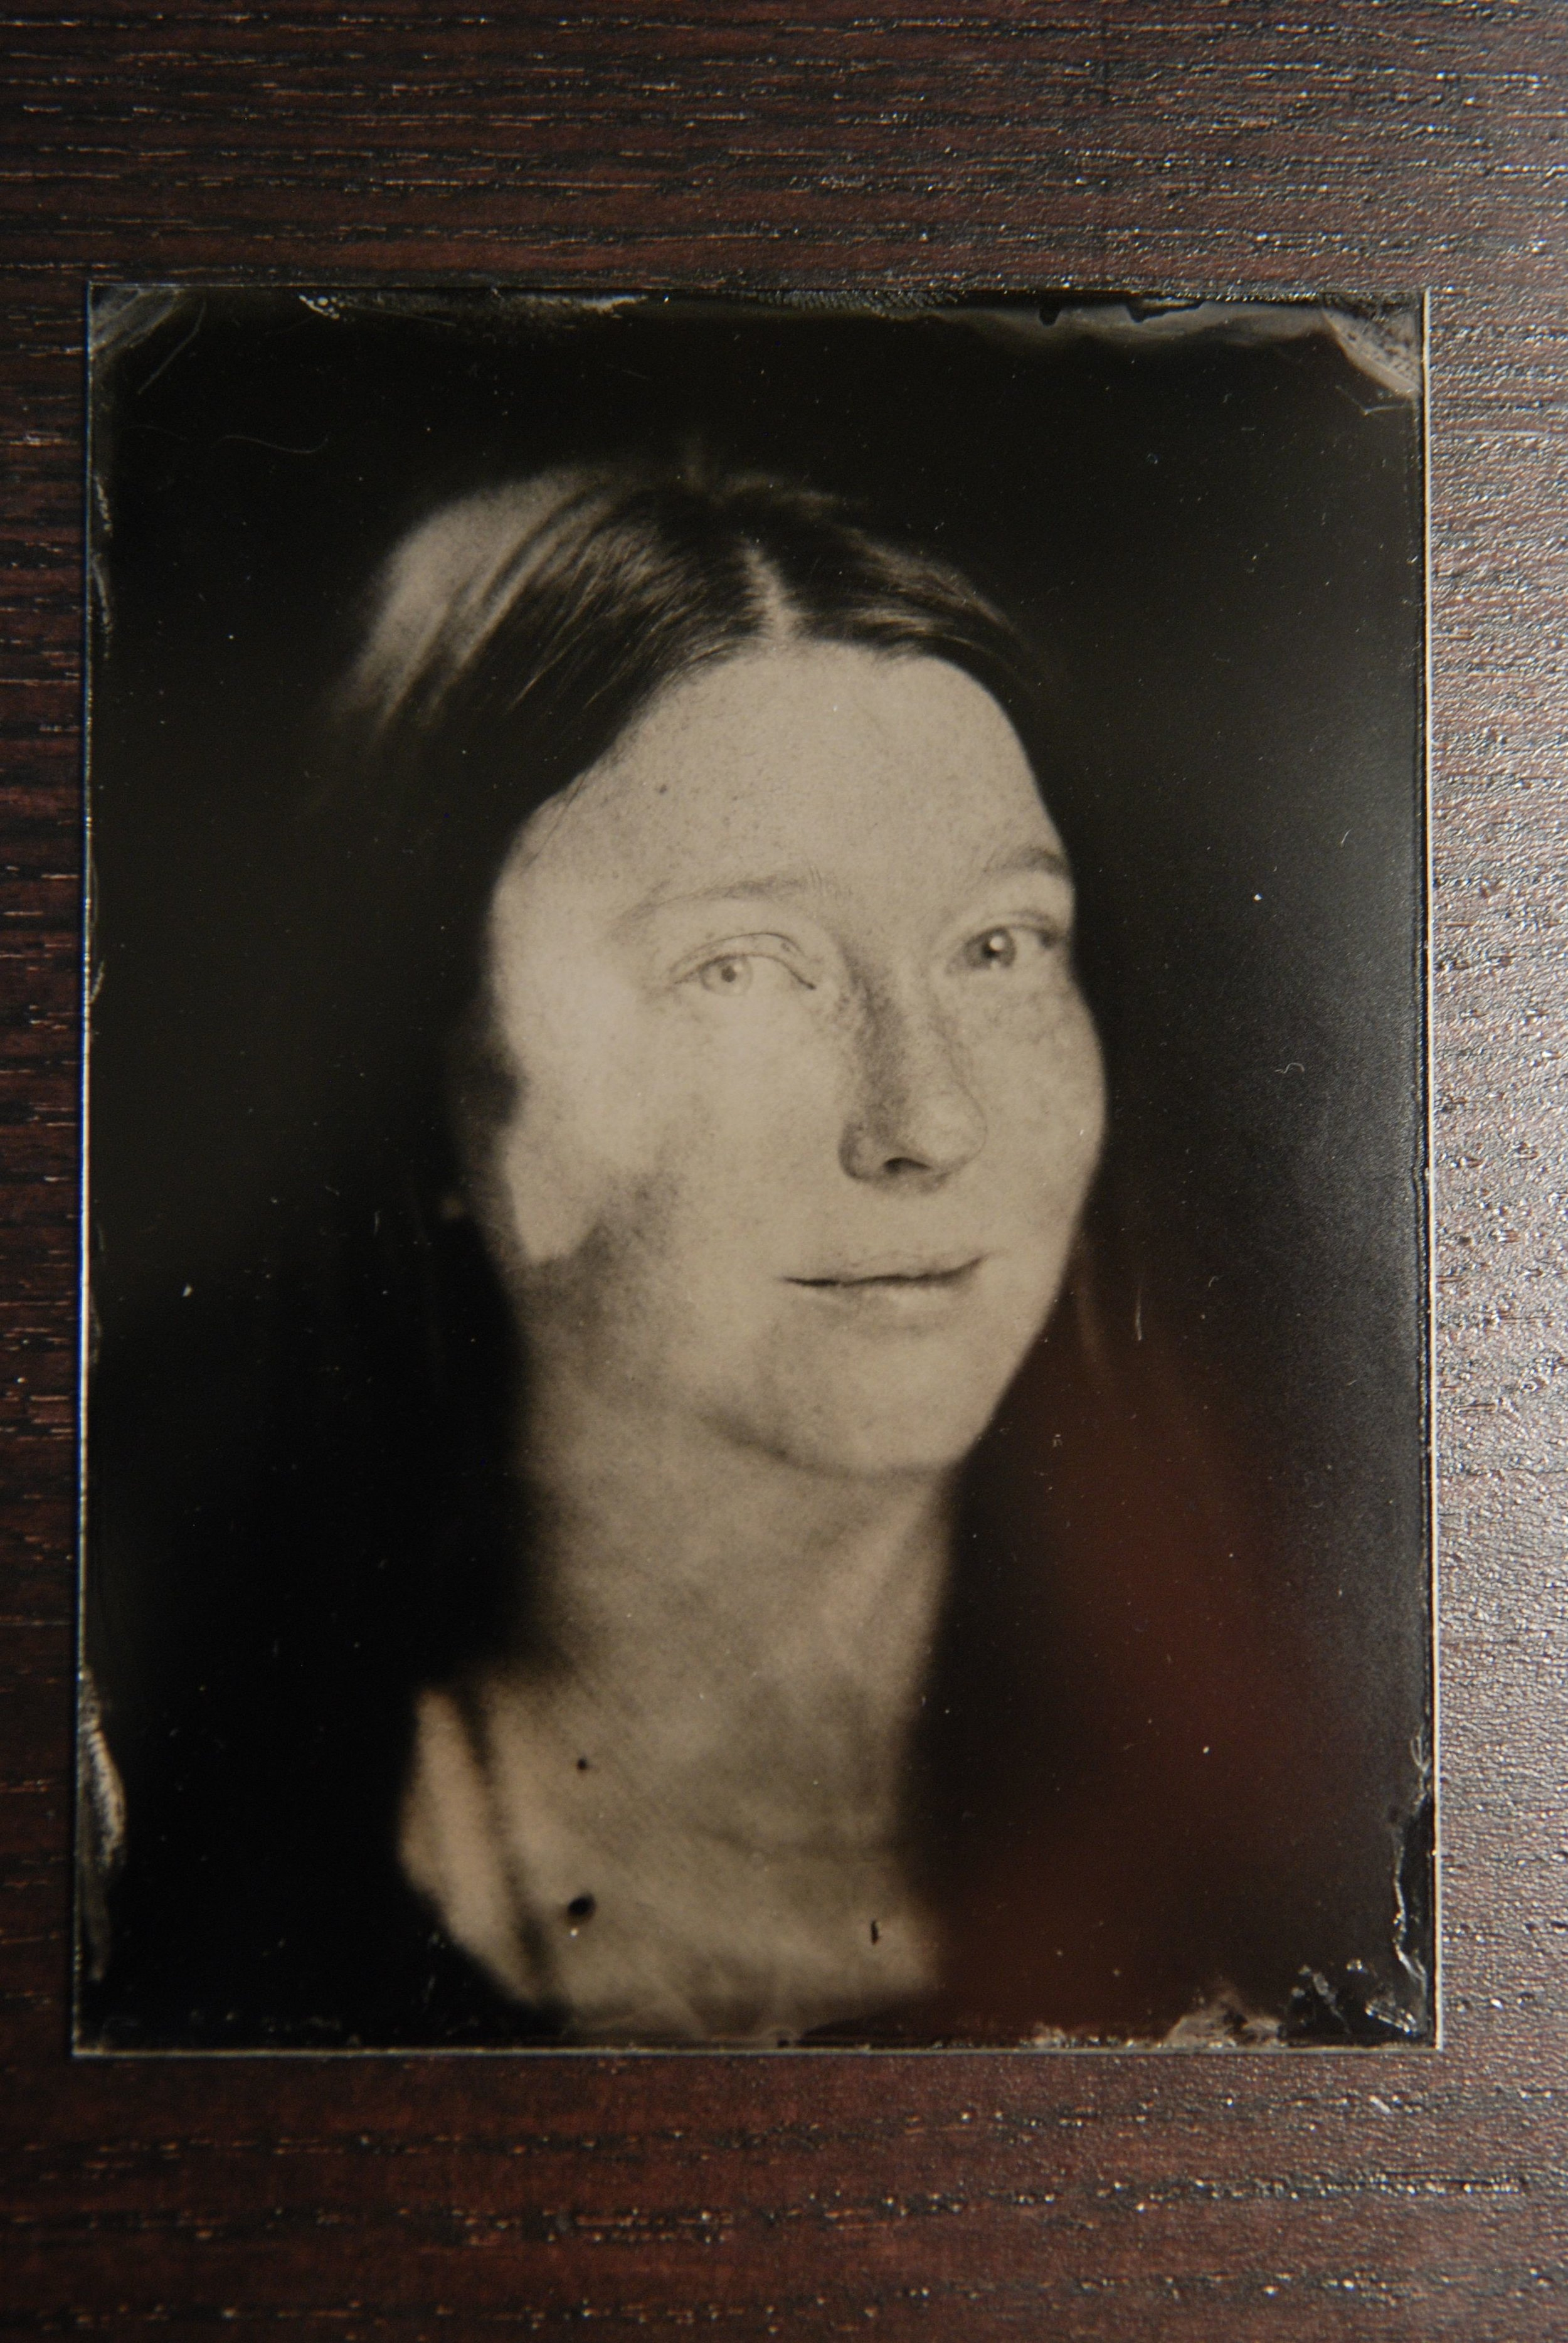 96847c755 Tintype photograph of a dark-haired, fair-skinned woman. She has her